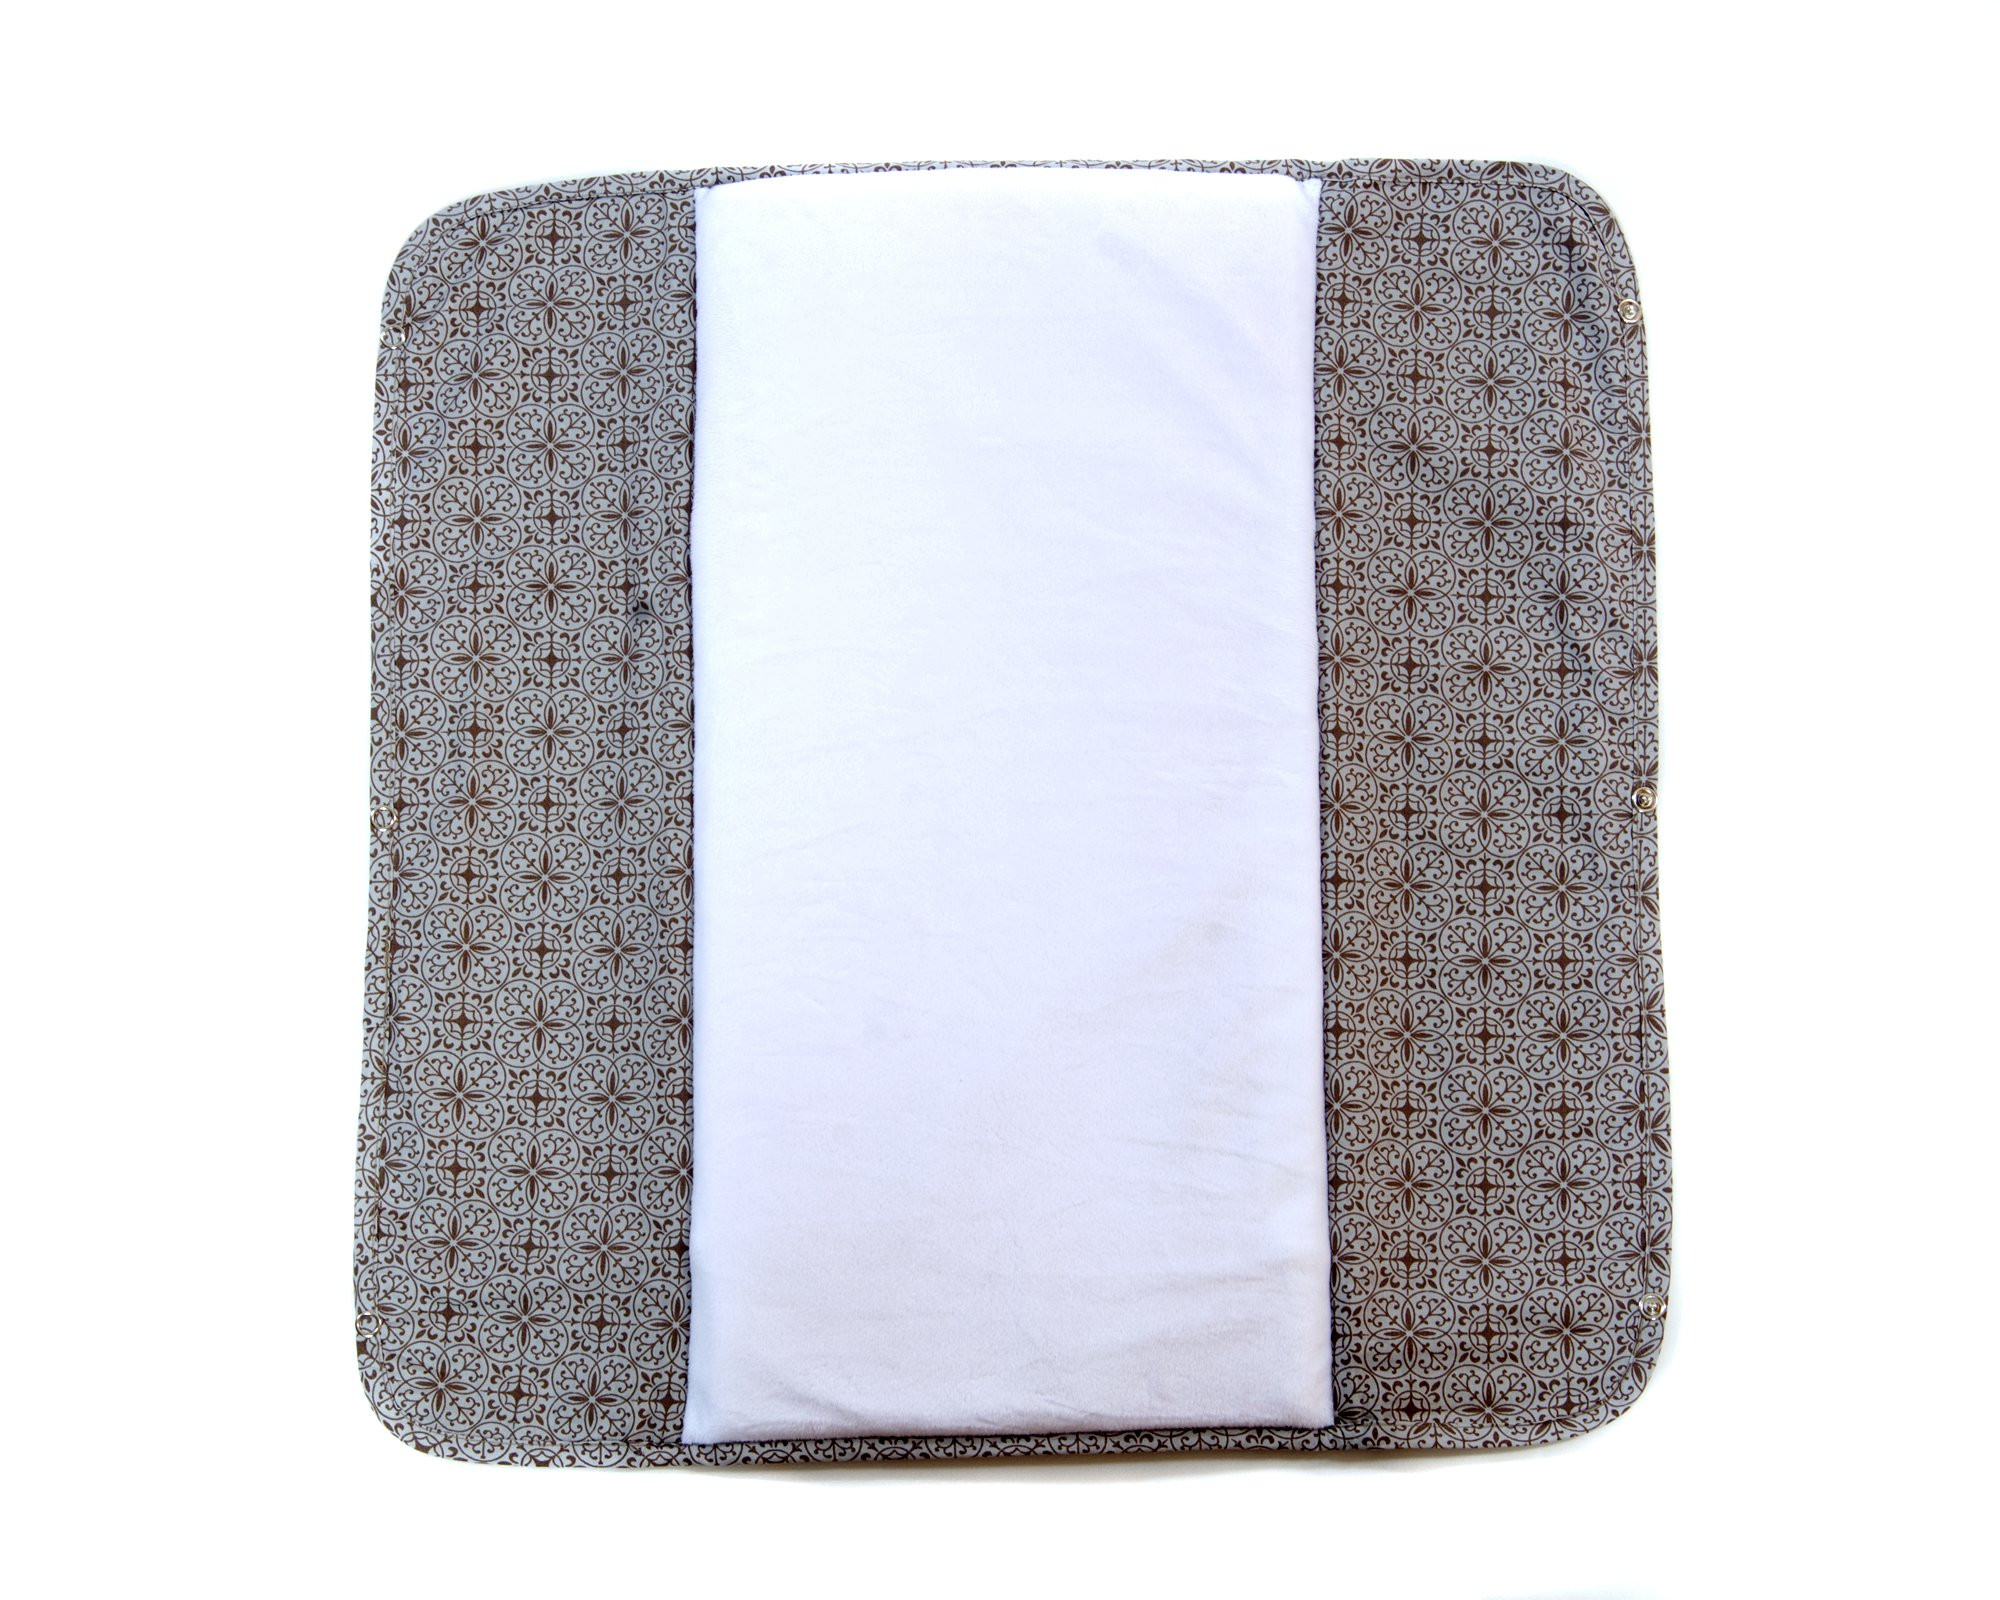 The Plush Pad Portable Changing Pad with Memory Foam, Morocco Brown Pattern